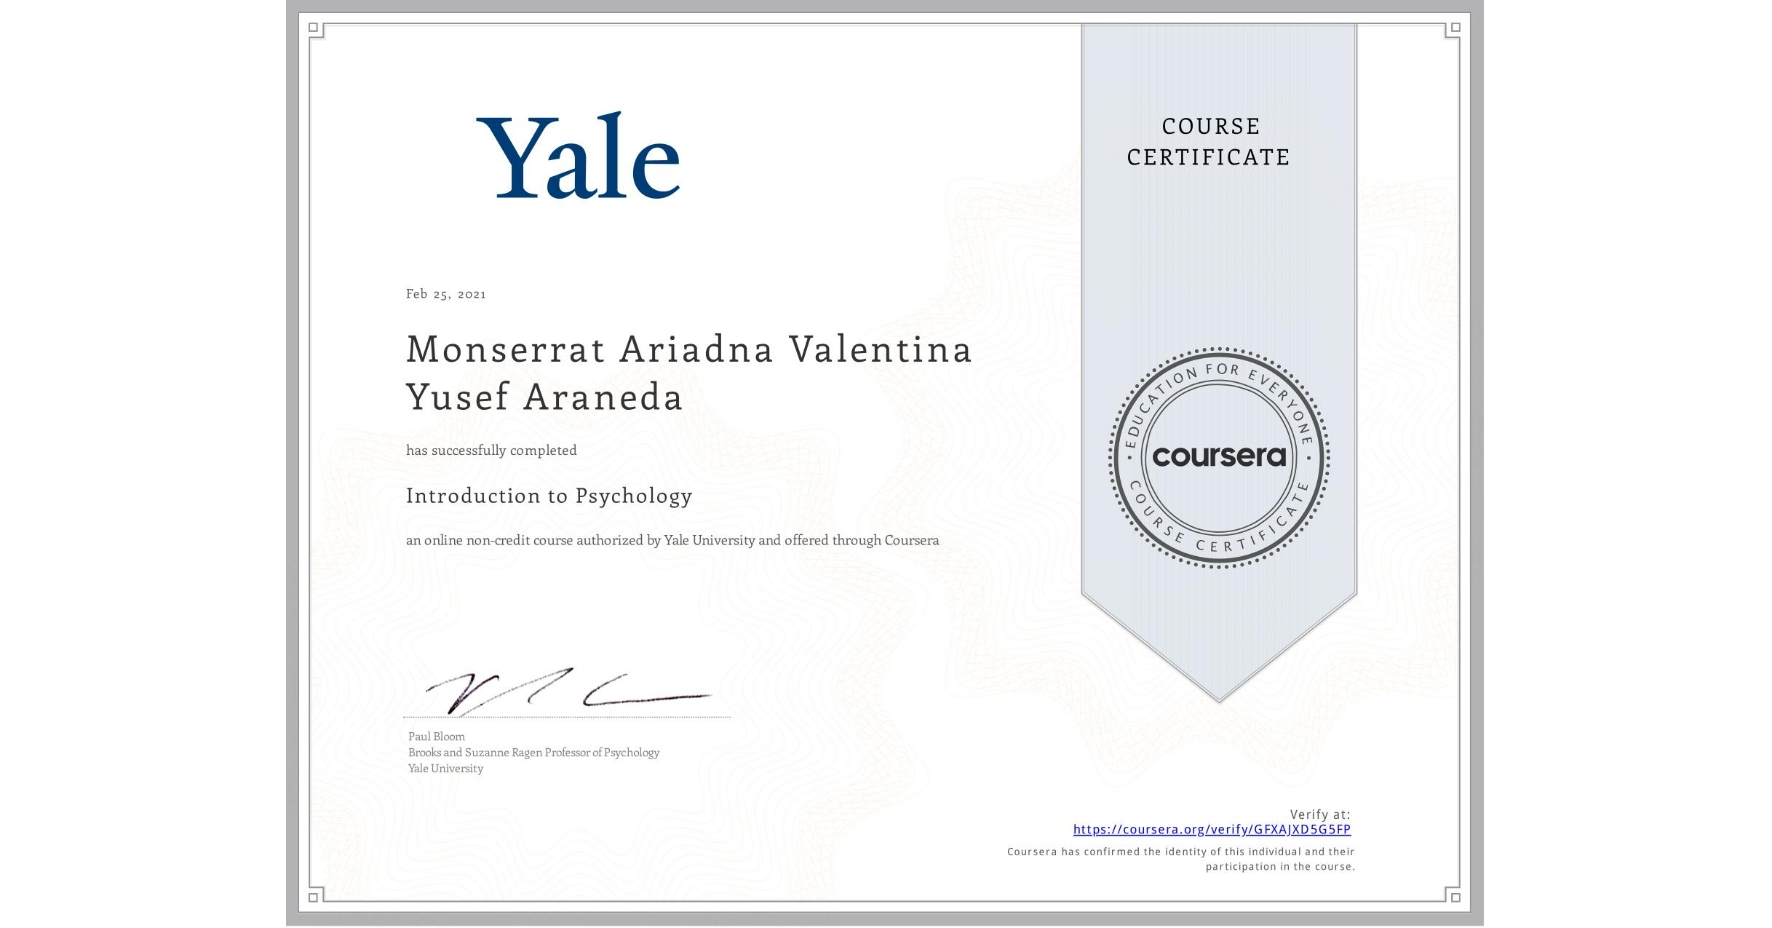 View certificate for Monserrat Ariadna Valentina Yusef Araneda, Introduction to Psychology , an online non-credit course authorized by Yale University and offered through Coursera